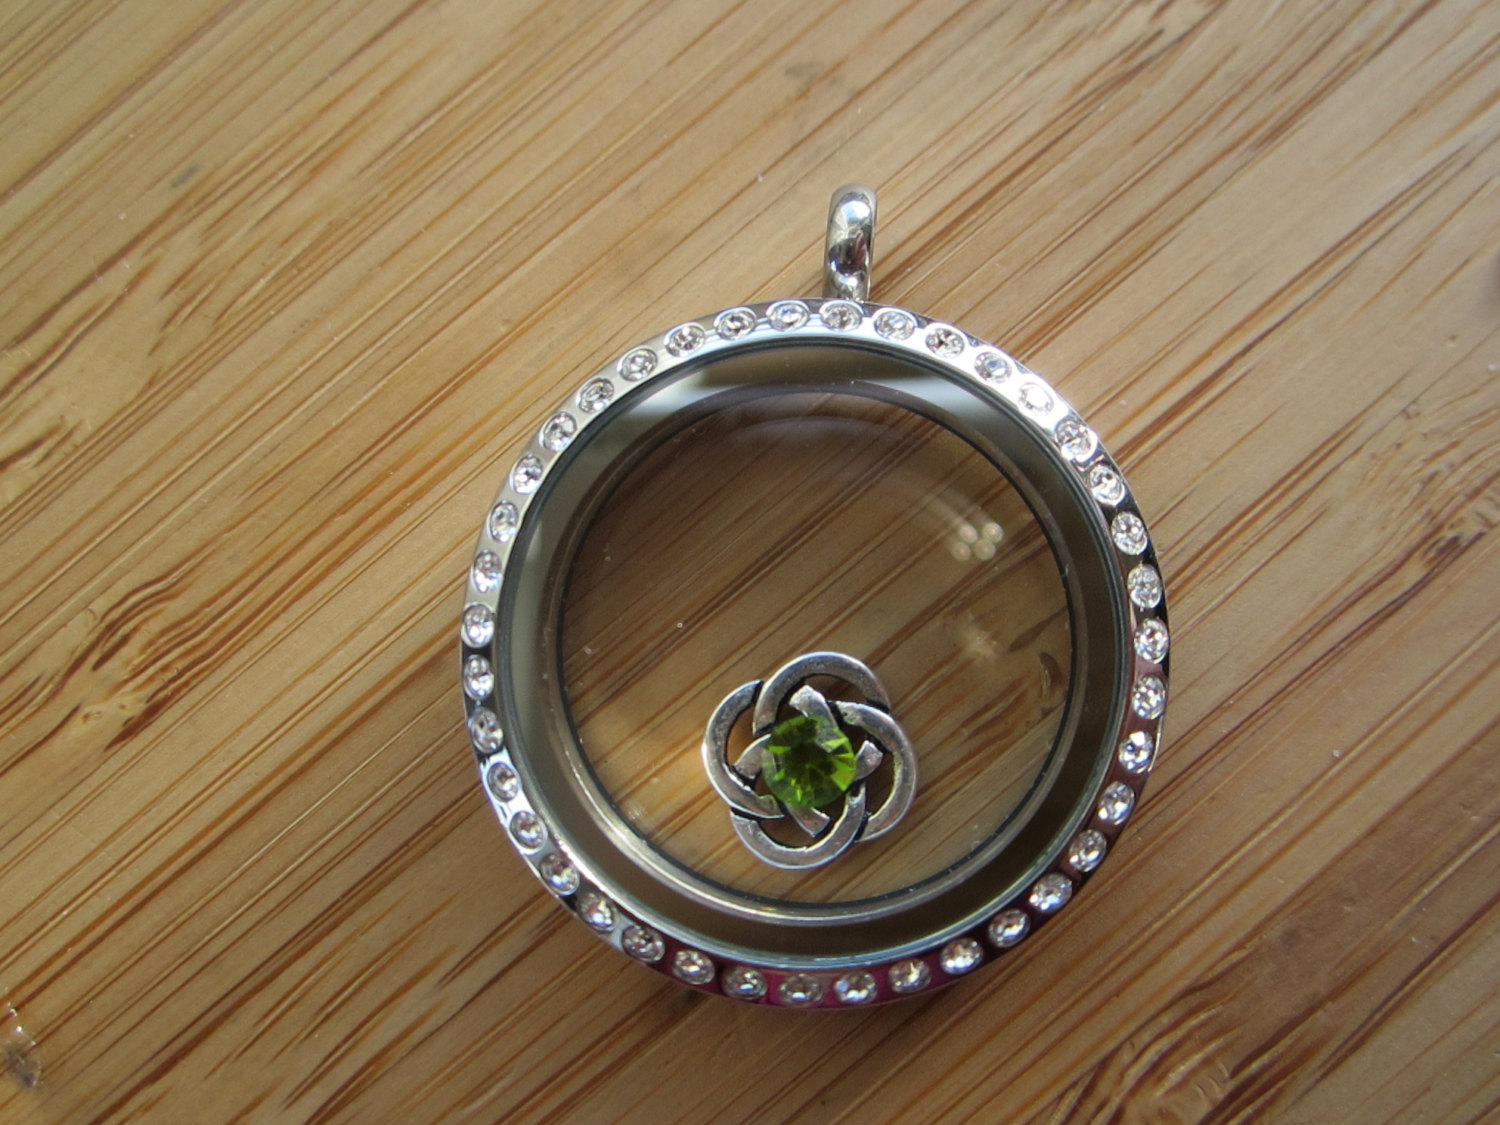 lockets aromatherapy like celtic pads locket triquetra similar new and wolf w items